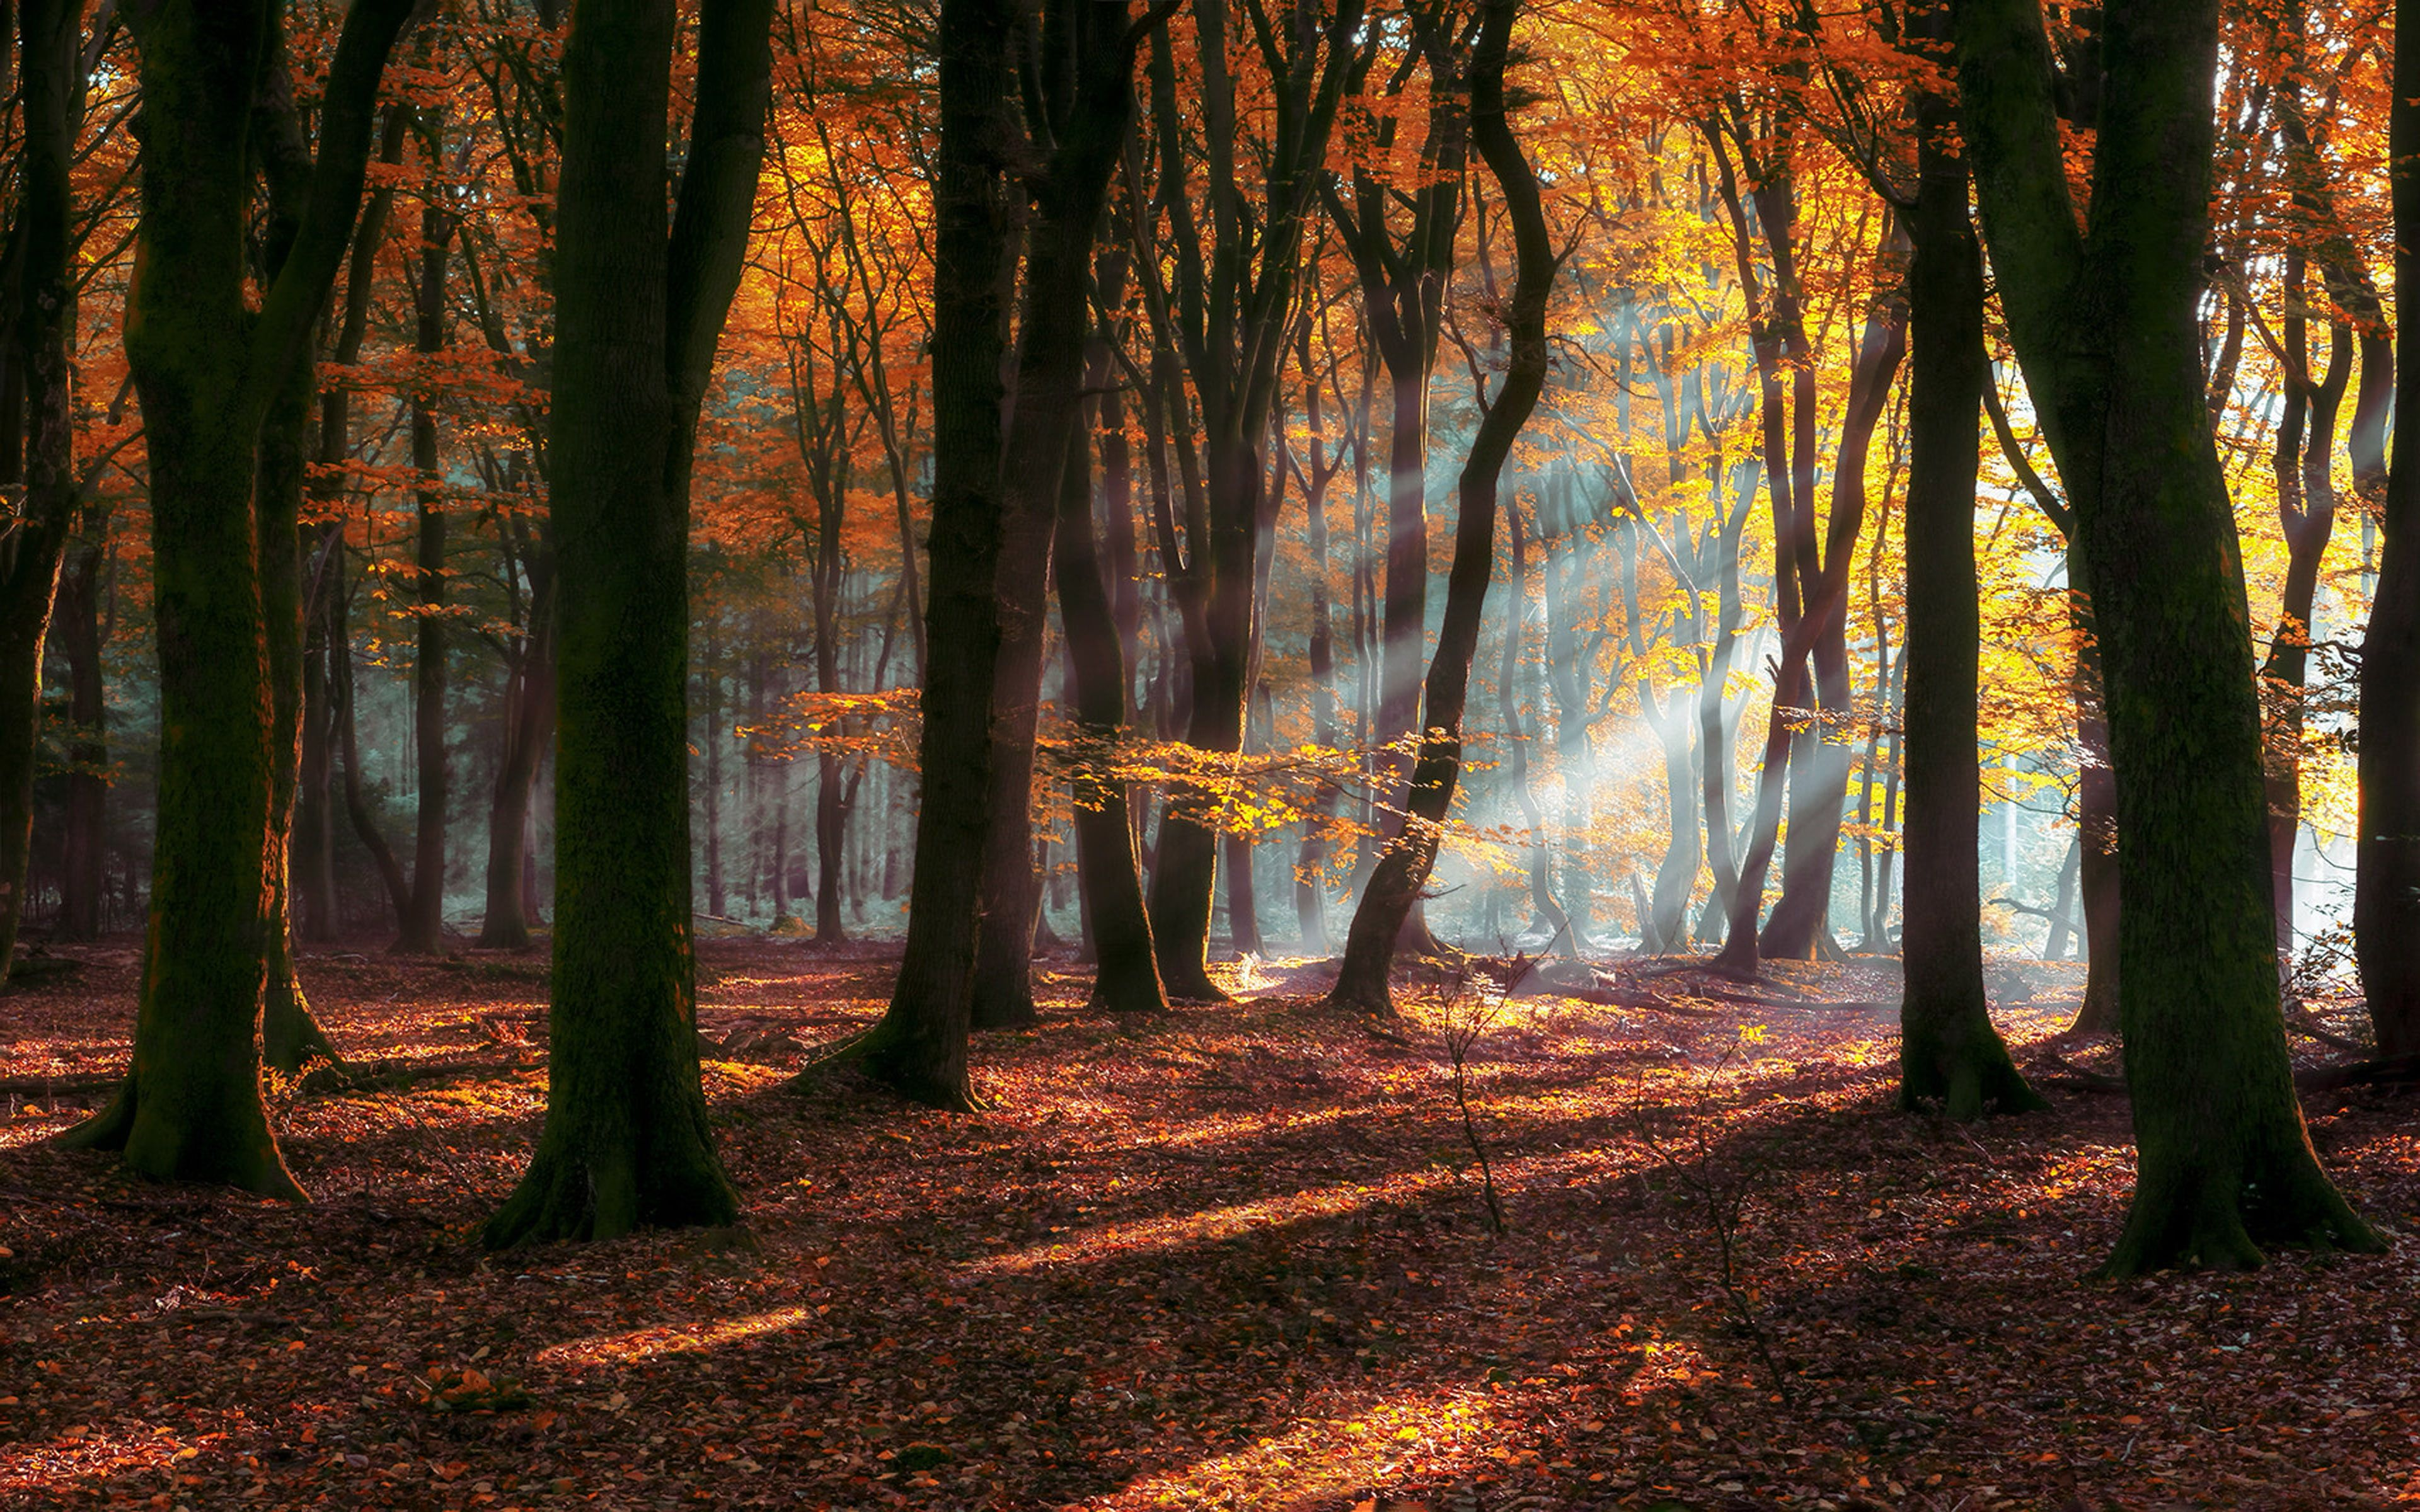 Morning Autumn Sun Rays Forest Deciduous Trees With Yellow And Red Leaves Landscape Nature Hd Wallpaper For Desktop Laptop Table Deciduous Trees Nature Hd Tree Wallpaper rays of light trees autumn